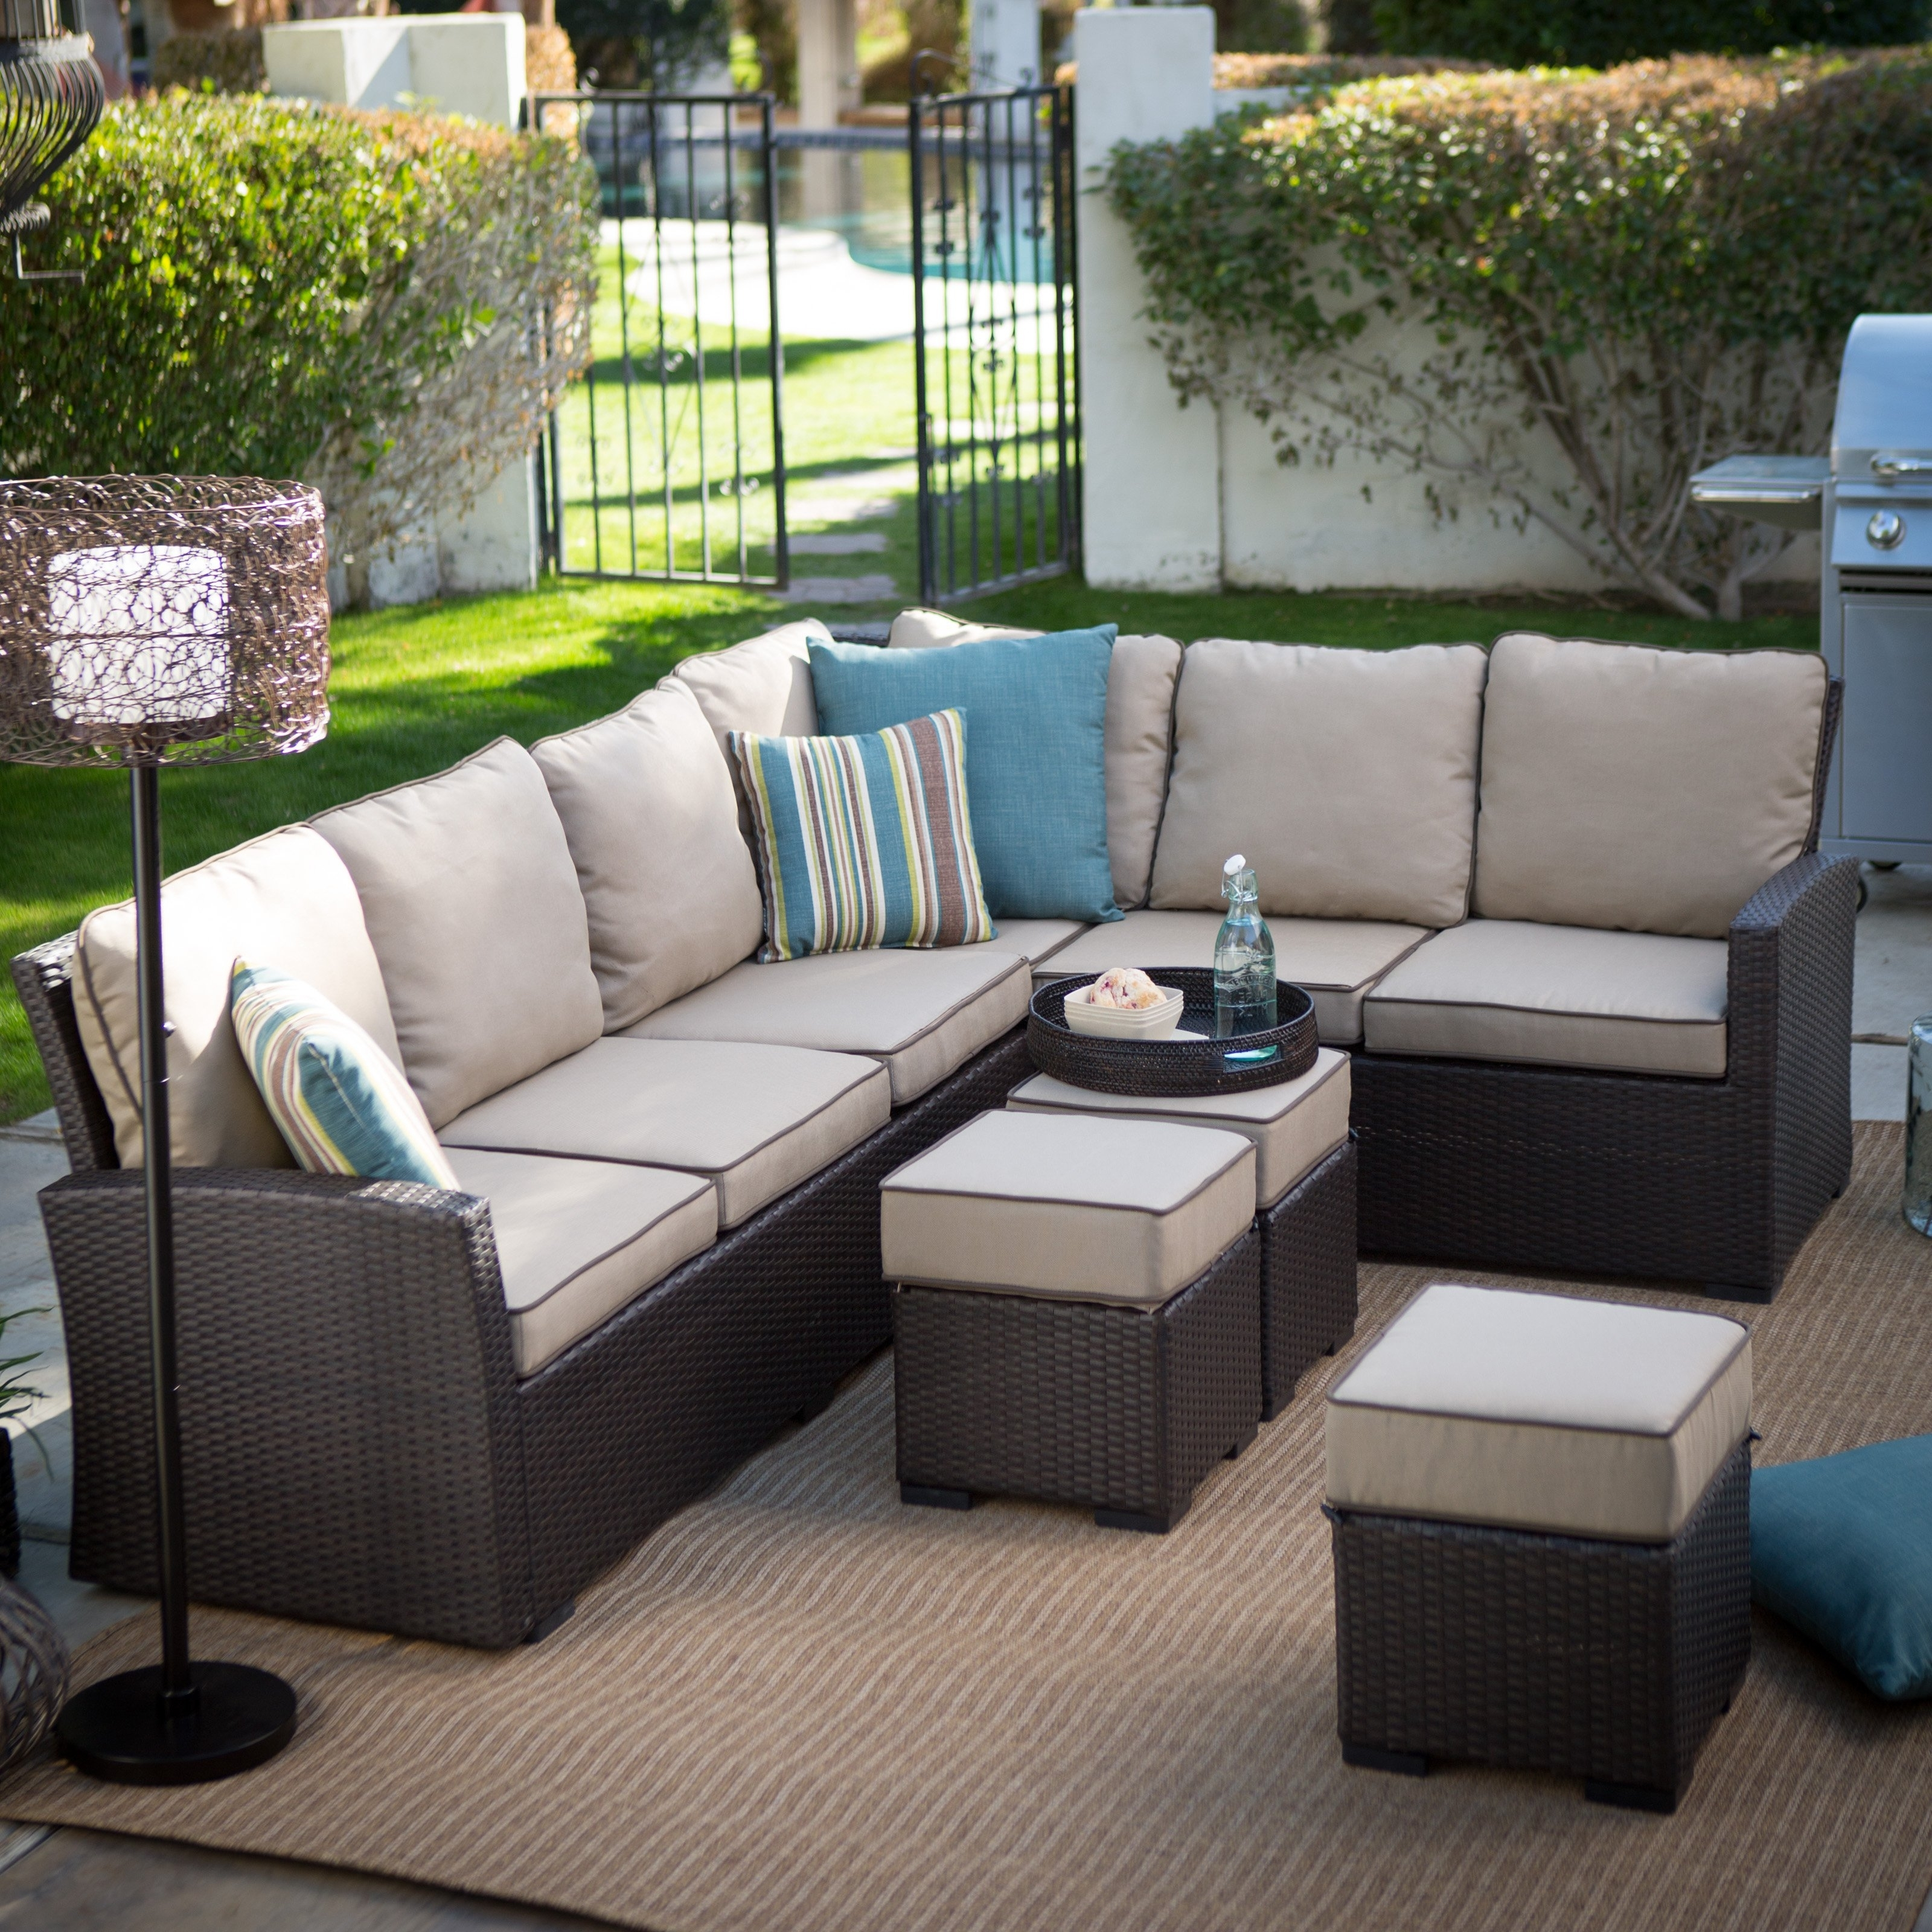 Widely Used Conversation Patio Sets With Outdoor Sectionals With Belham Living Monticello All Weather Outdoor Wicker Sofa Sectional (View 6 of 15)